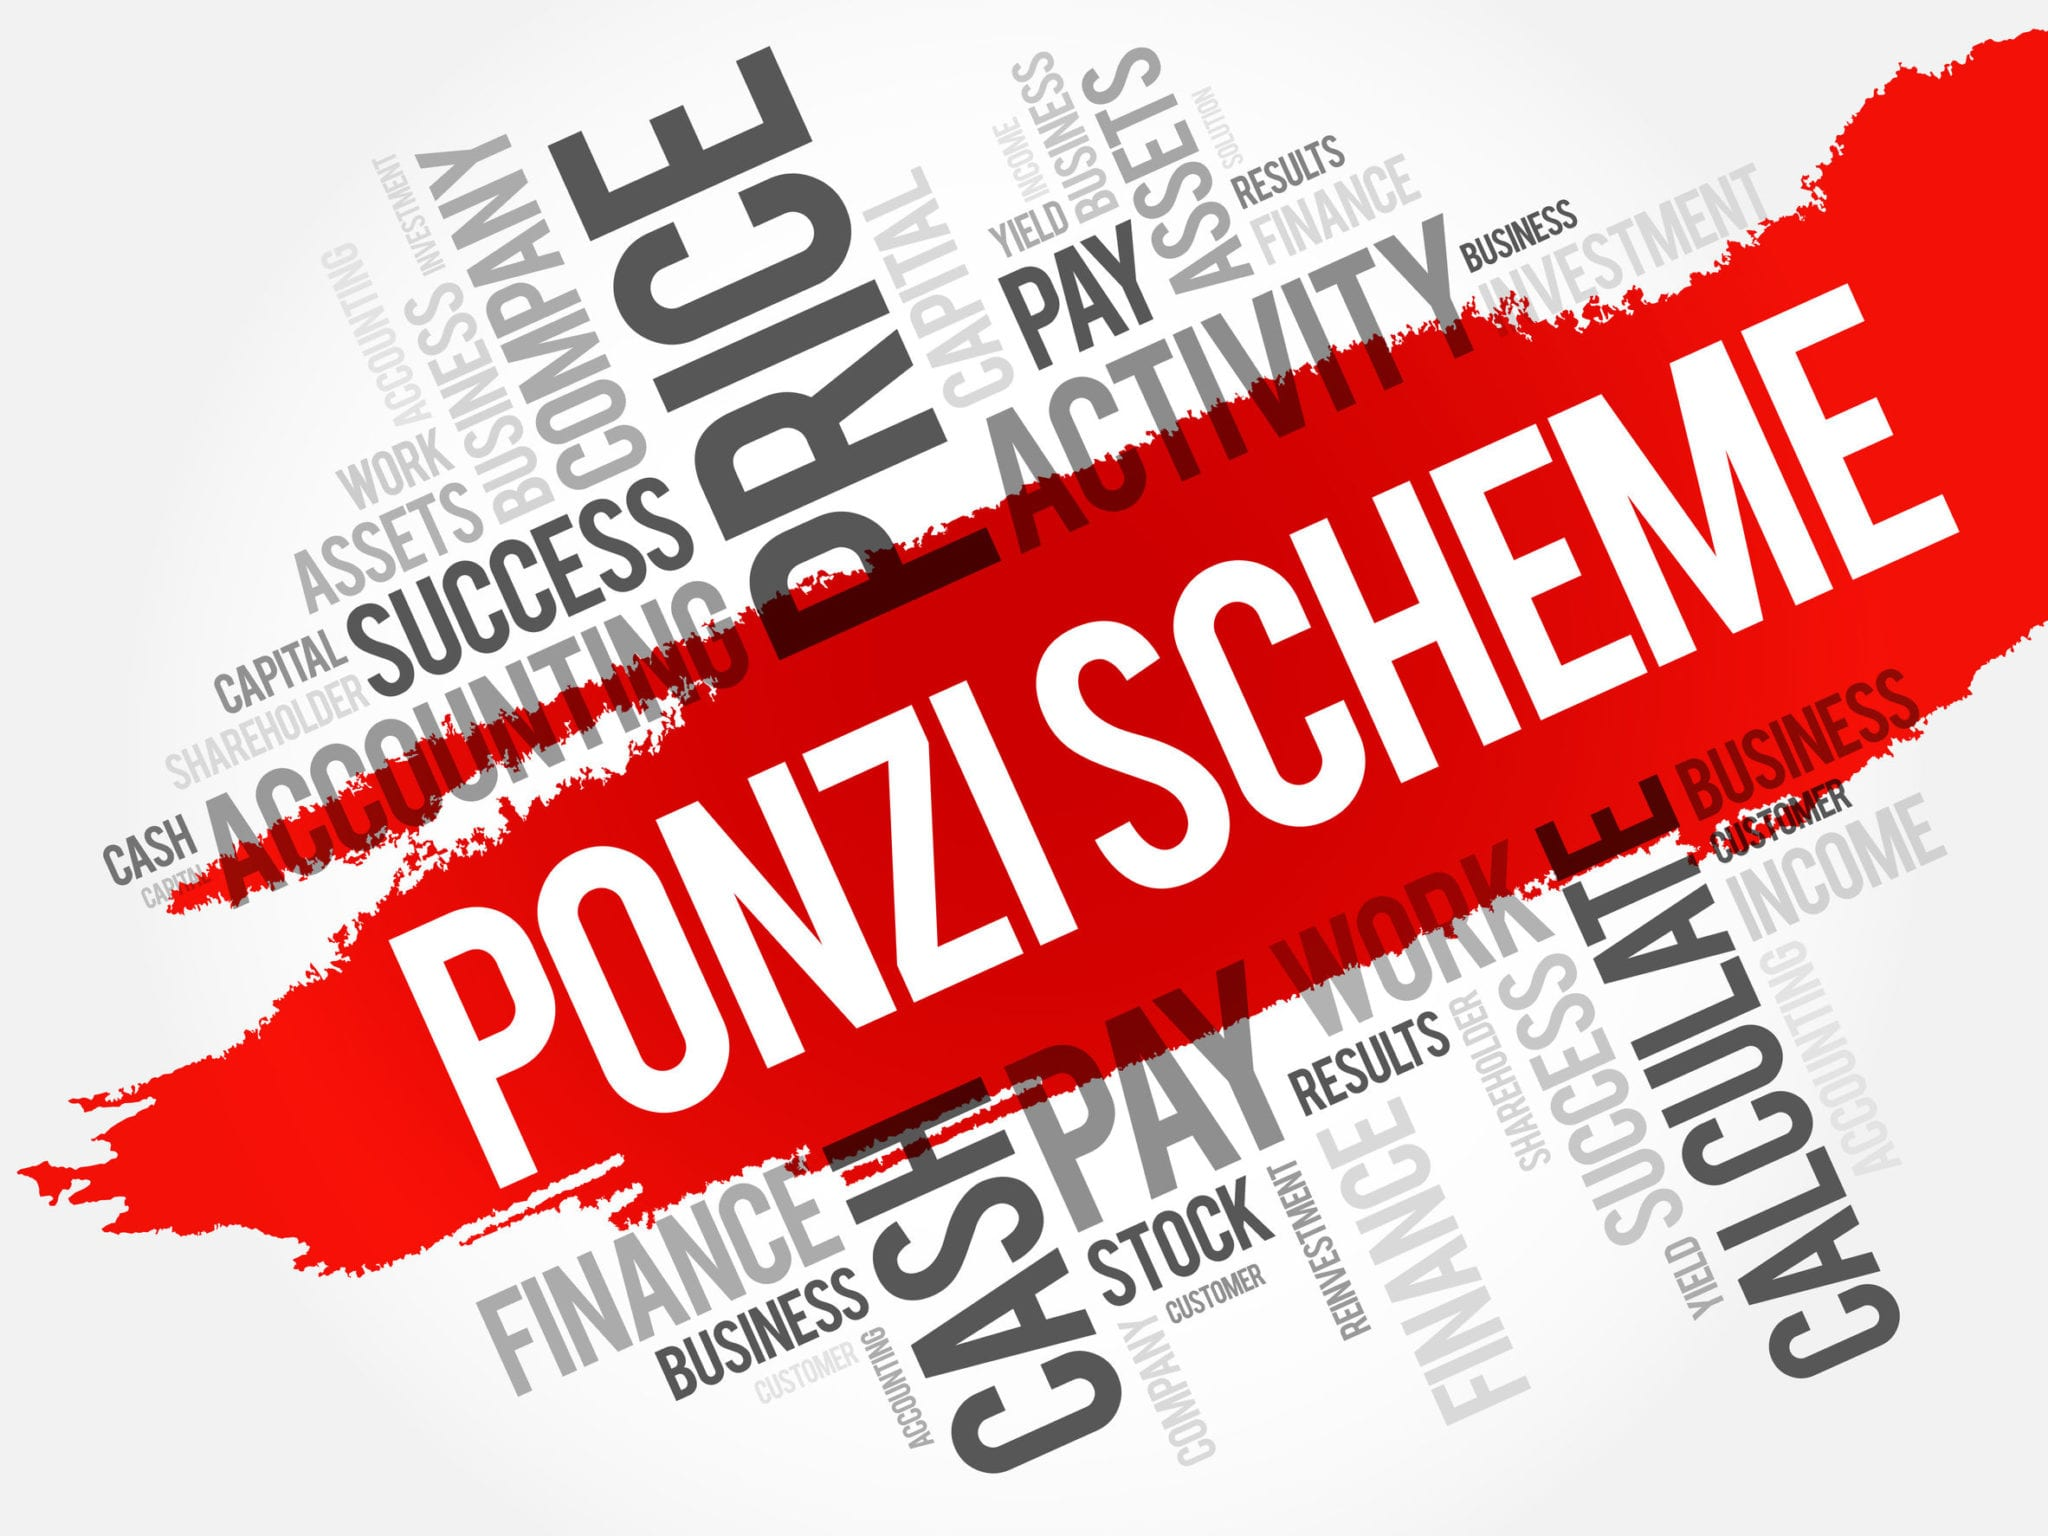 Statements from 2nd Largest Ponzi Scheme in MN Completely Fabricated